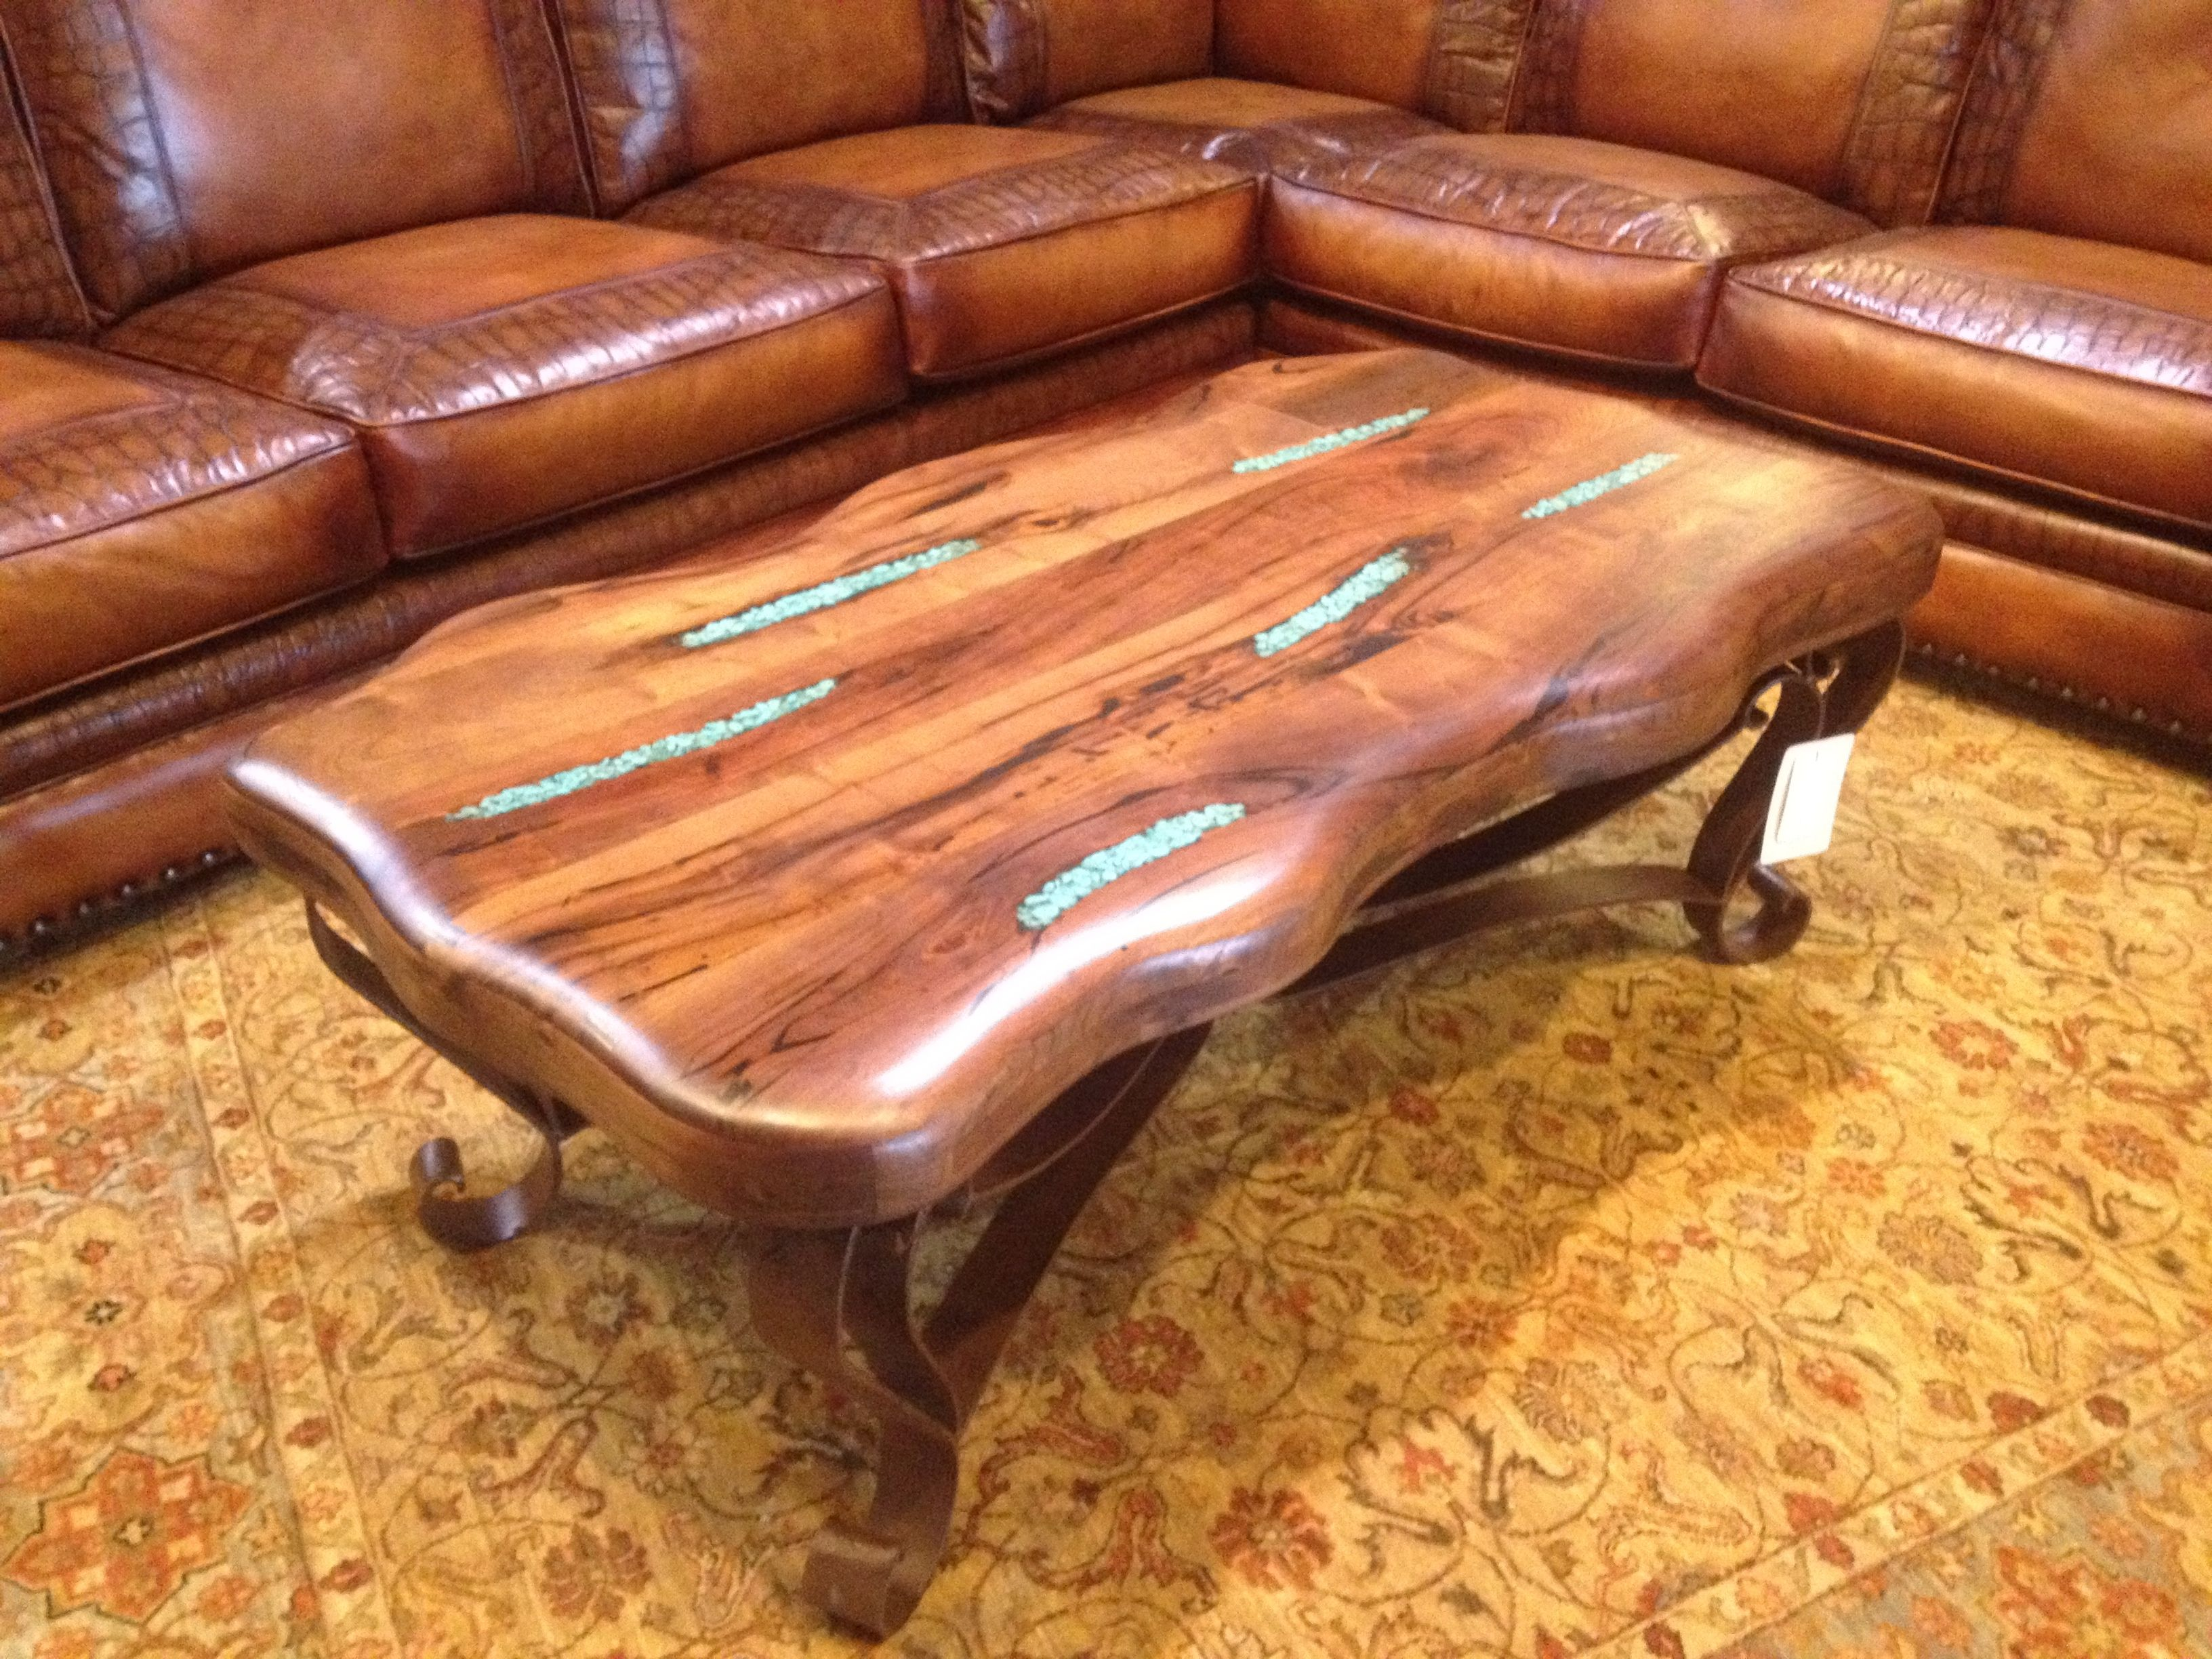 Add a work of art to your living area with a mesquite wood coffee